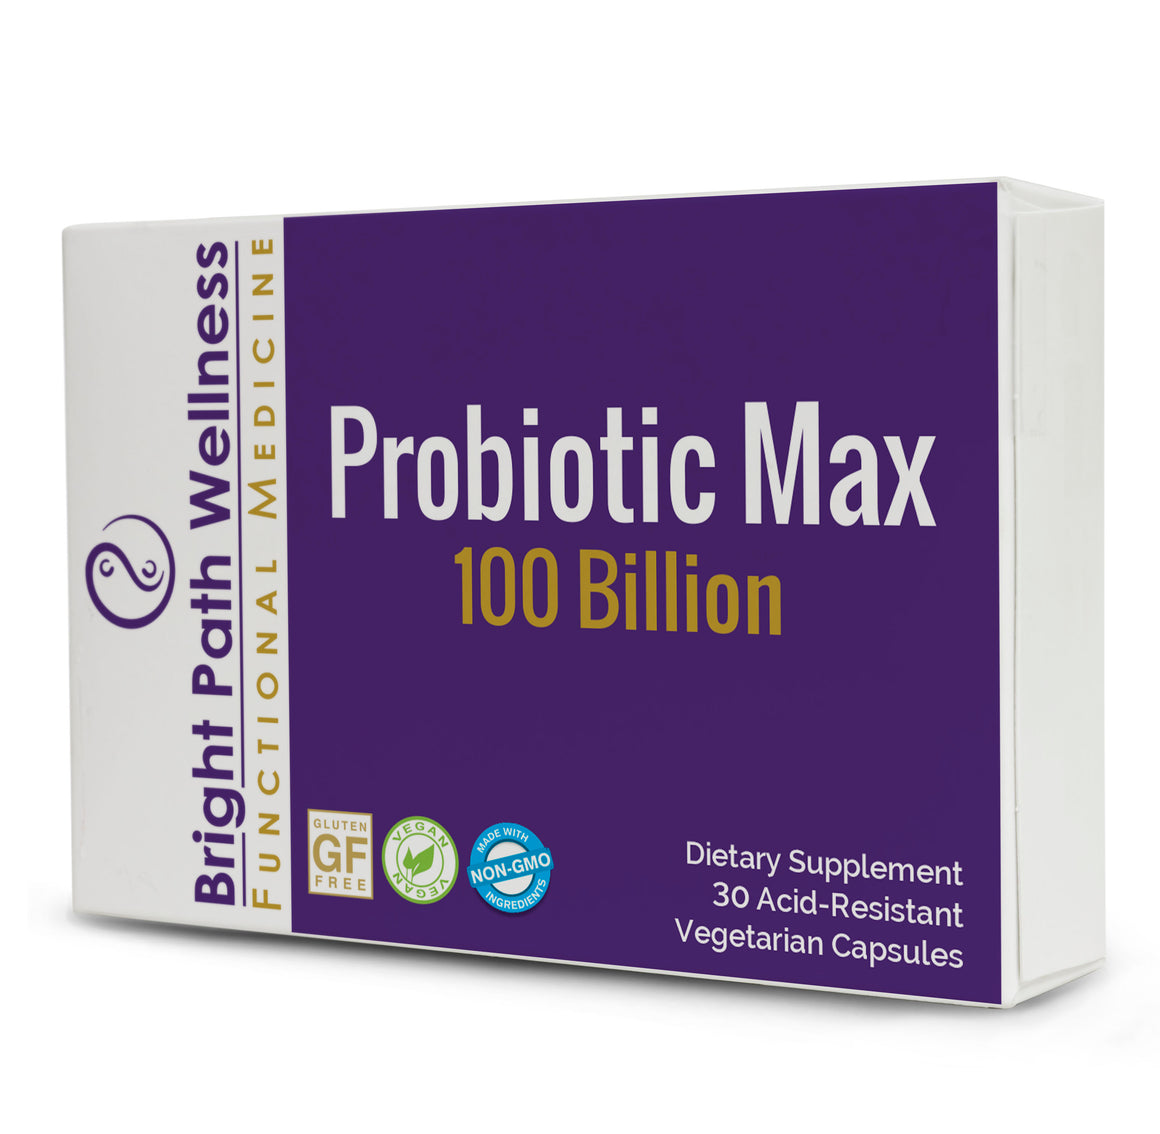 Probiotic Max 100 Billion - 30 capsules, Vegan, Non GMO, Gluten Free